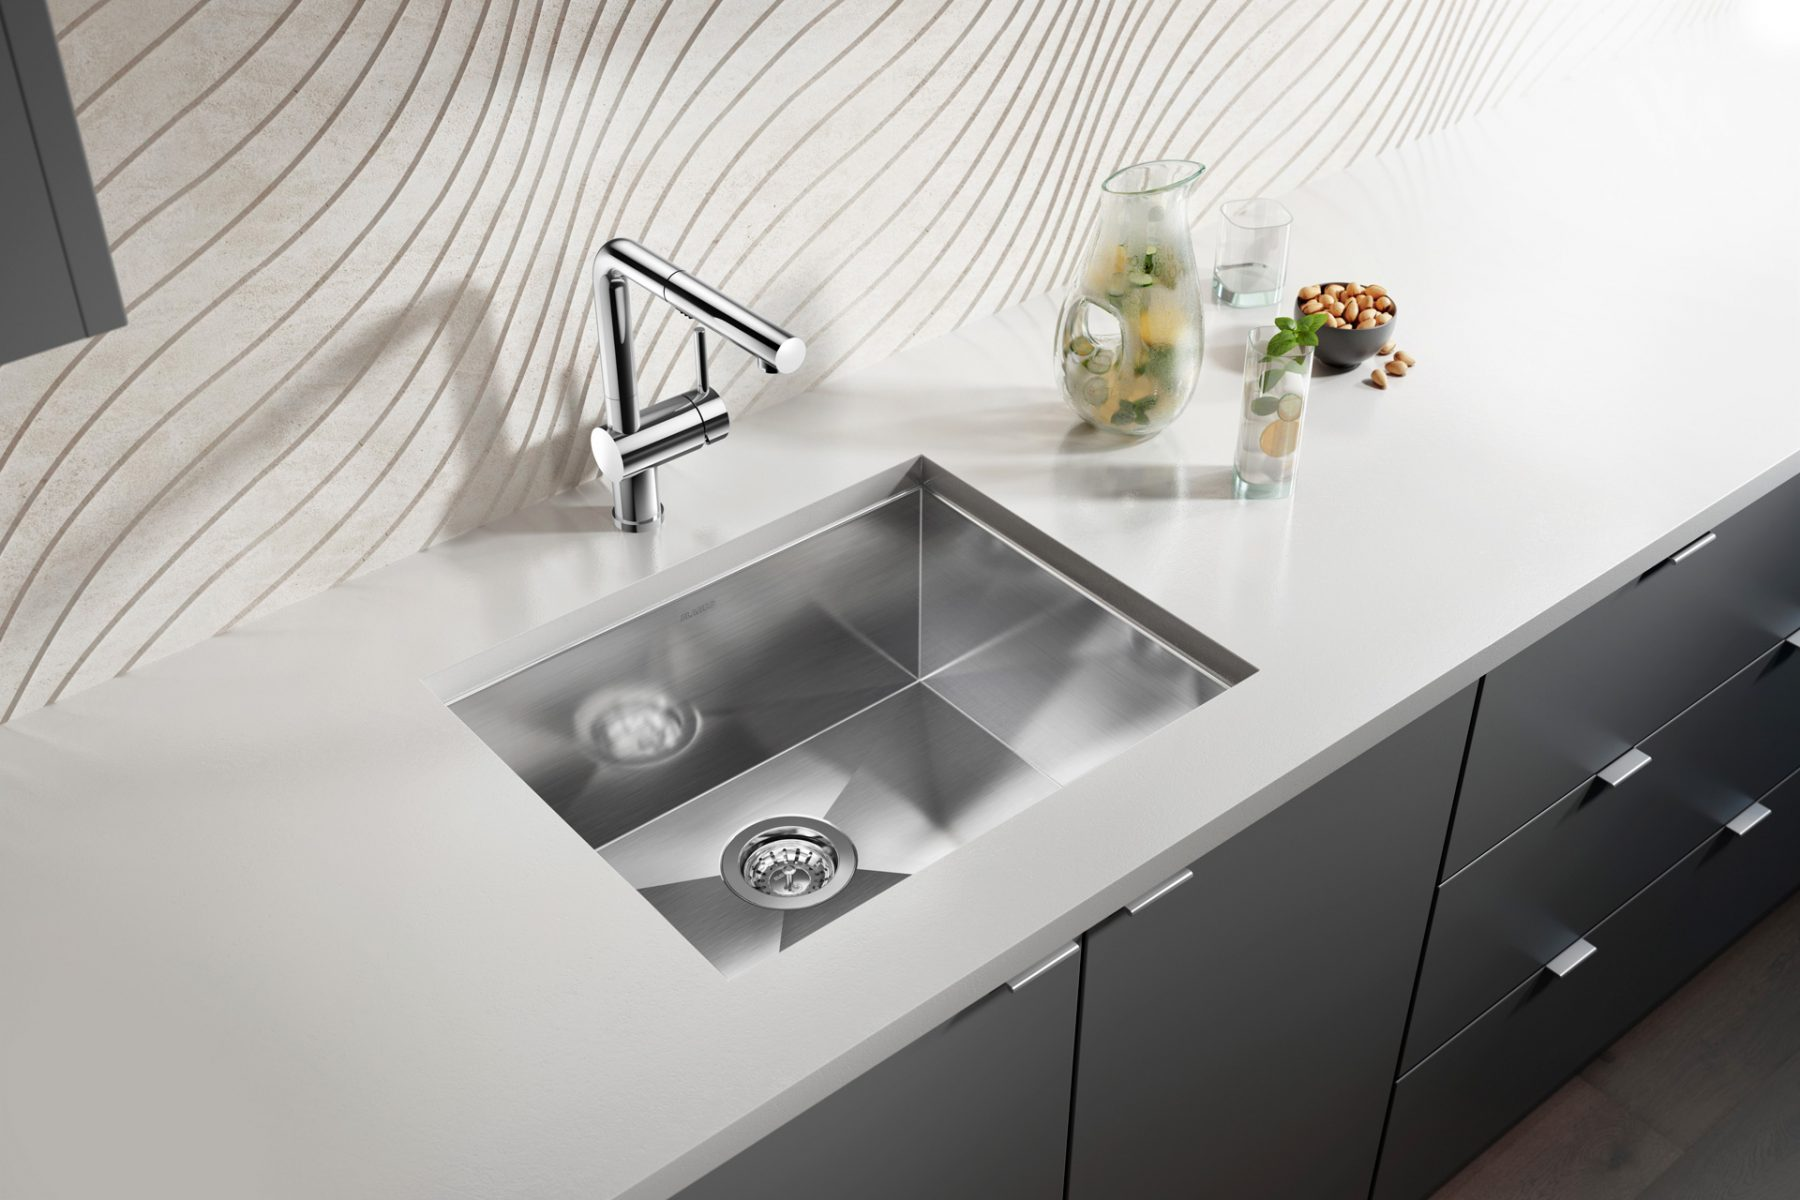 3d-imagery-maker-modern-sink-and-faucet